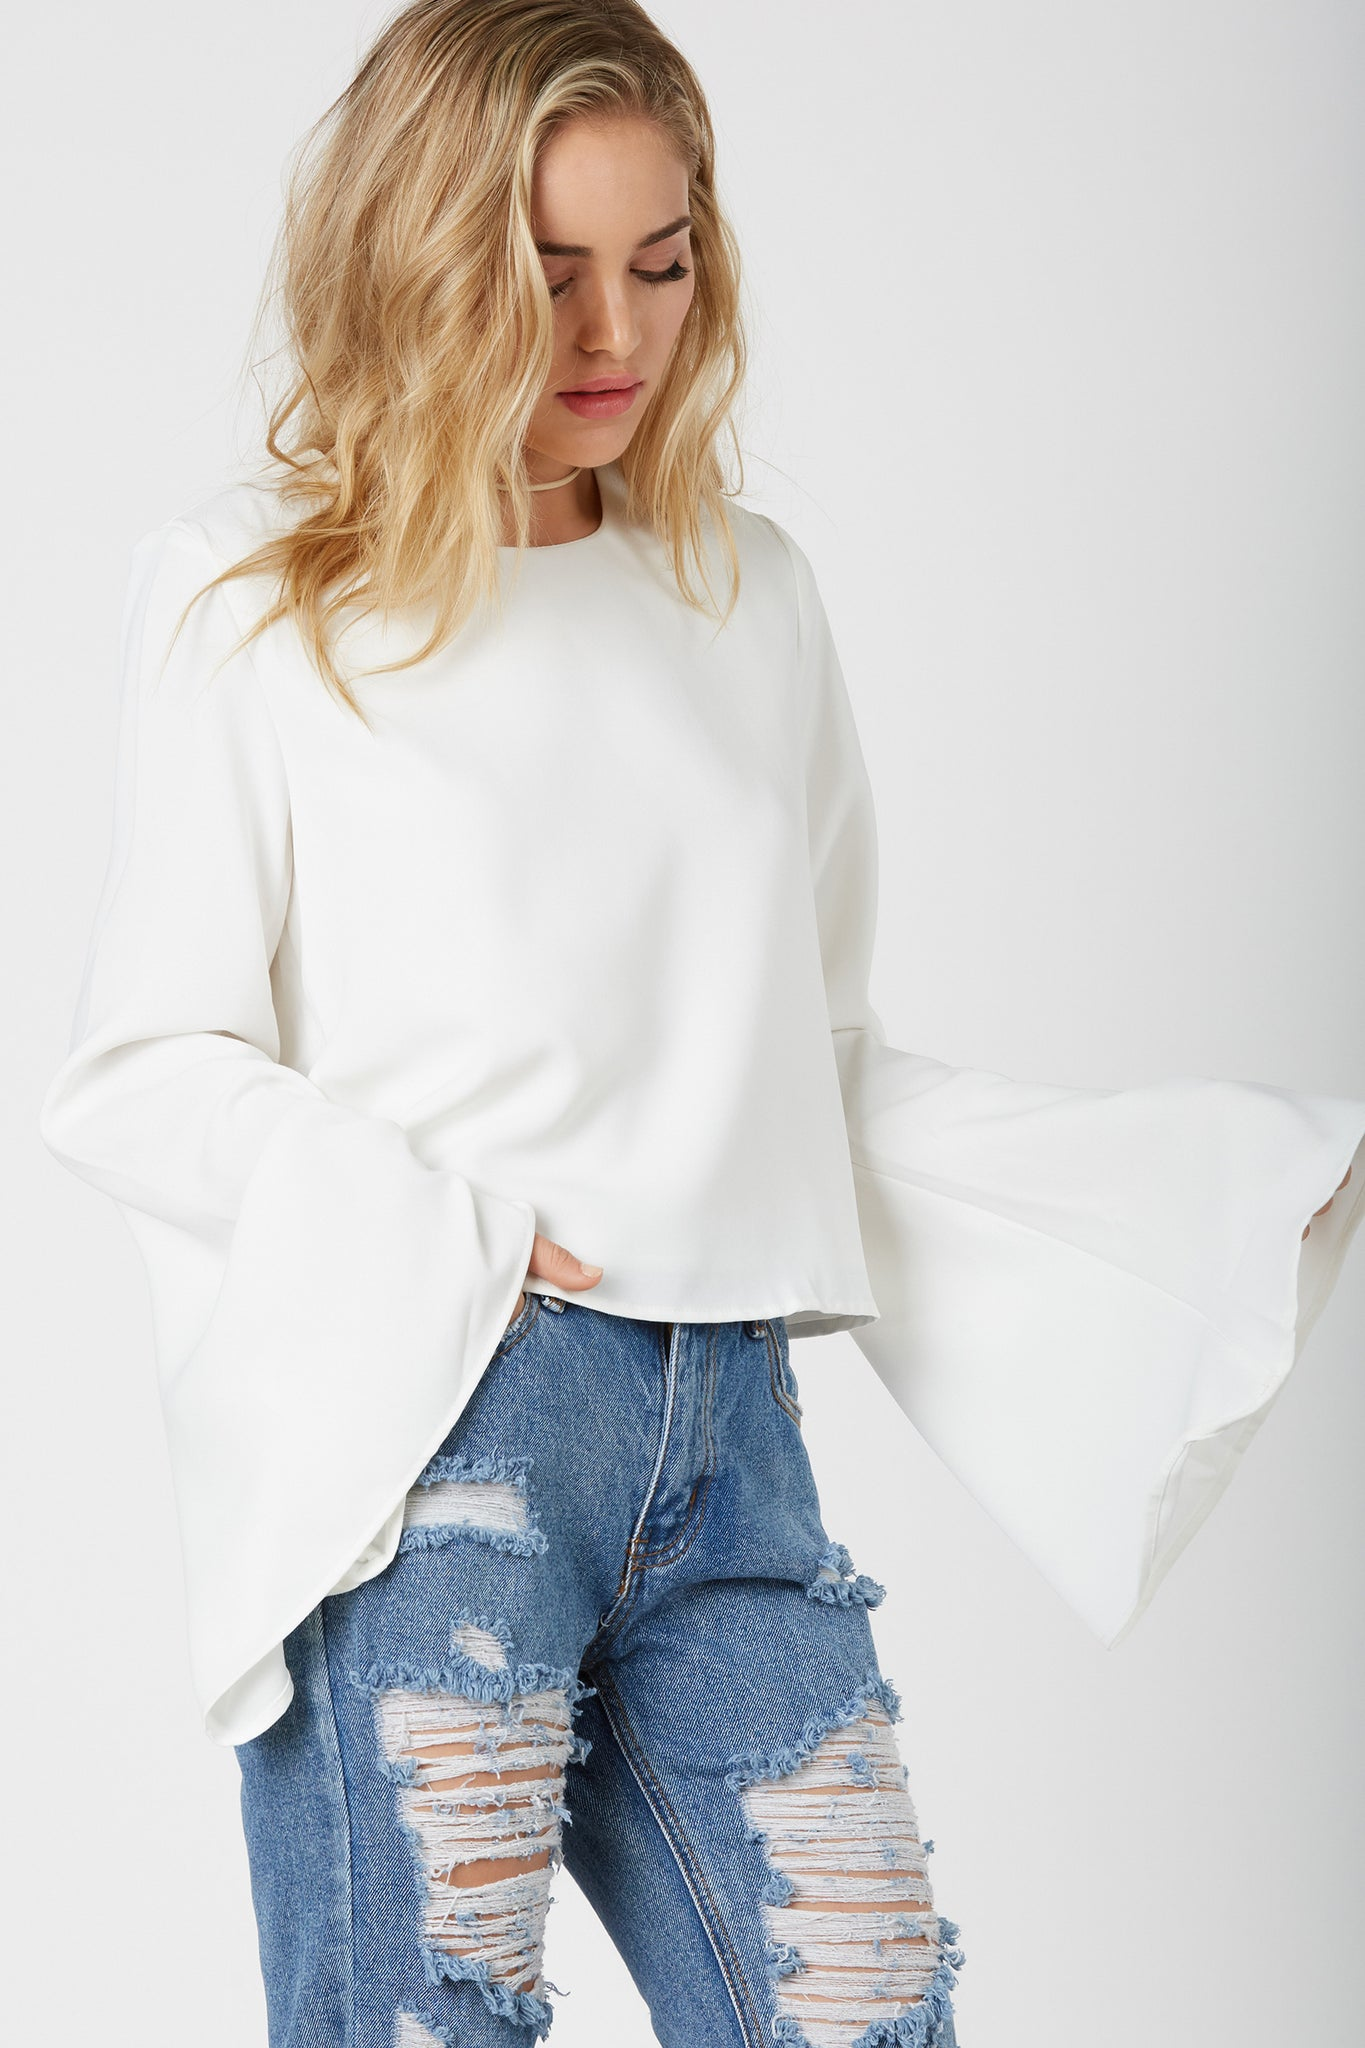 Chic long sleeve top with round neckline and flowy bell sleeves. Oversized fit with cropped hem finish.